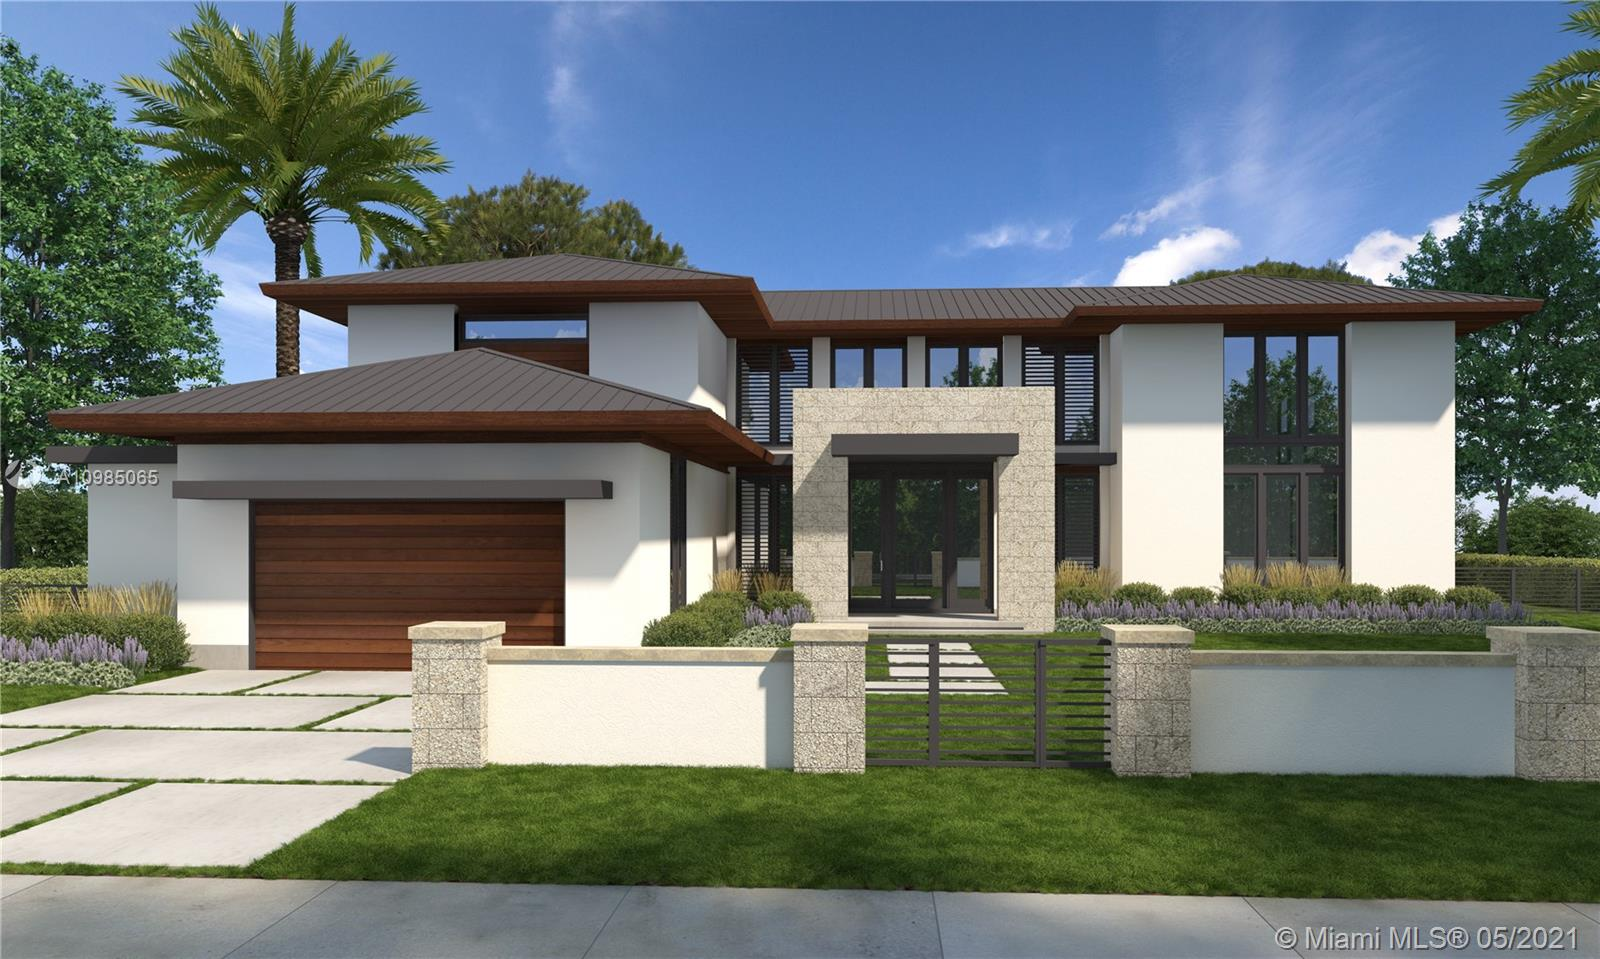 Brand new custom built home on this beautiful and very quiet street in the City of South Miami. Over 8000 square feet of pure luxury on over 22,000 sqft of lot . You can choose the lay out as well as room count and sizes and finishes . Best kept secret when it comes to this secluded neighborhood with amazing oak trees and vegetation and surrounded by multi-million dollar mansions makes this the best place to call home . Please call for more details as well as renderings .